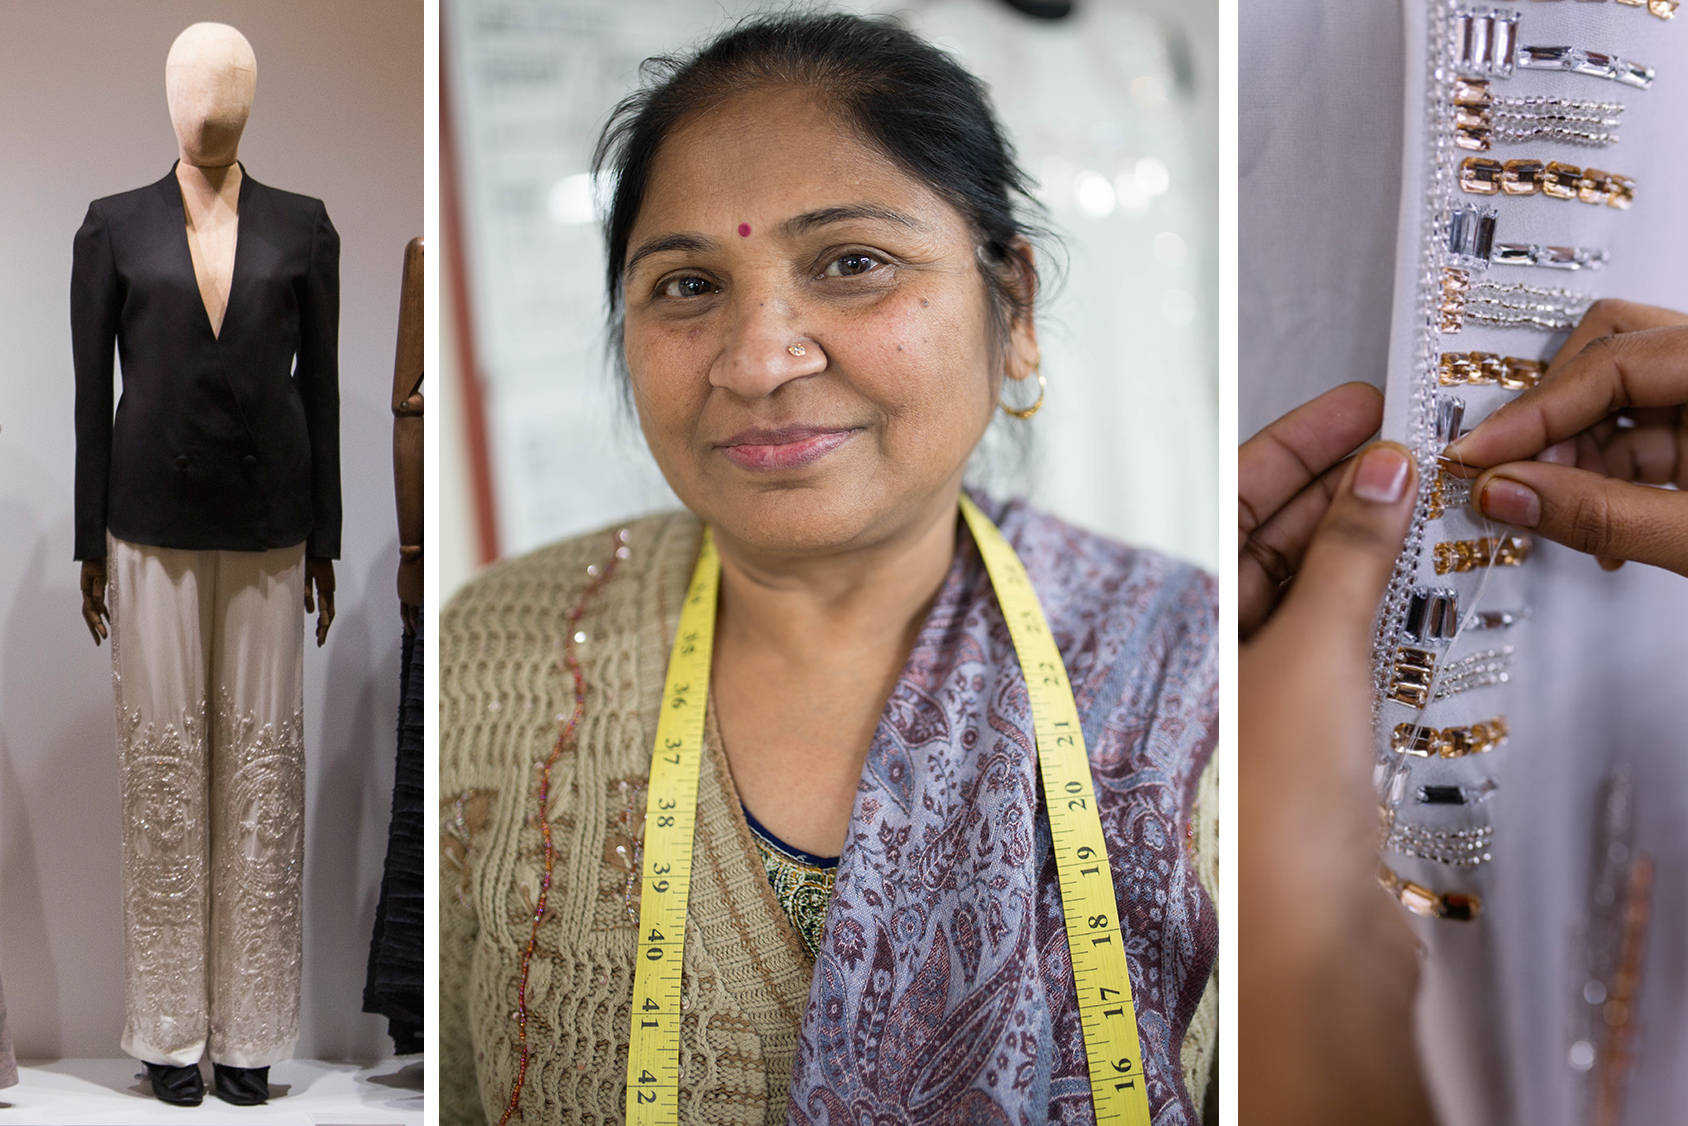 MEET THE PERSON BEHIND THE GARMENT